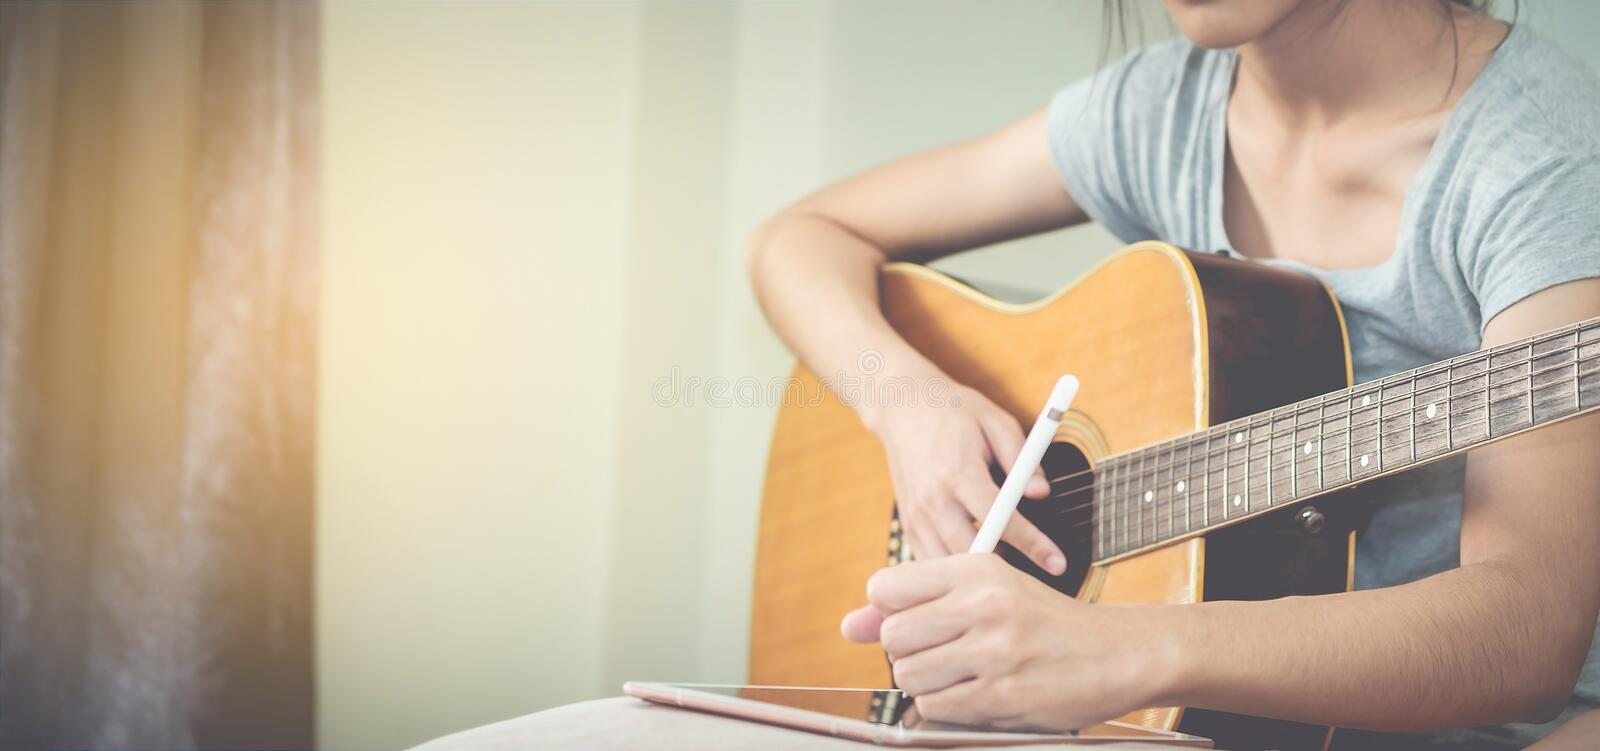 Female musicians play guitar and write songs using the tablet.This image is blurred and soft focus. royalty free stock photo